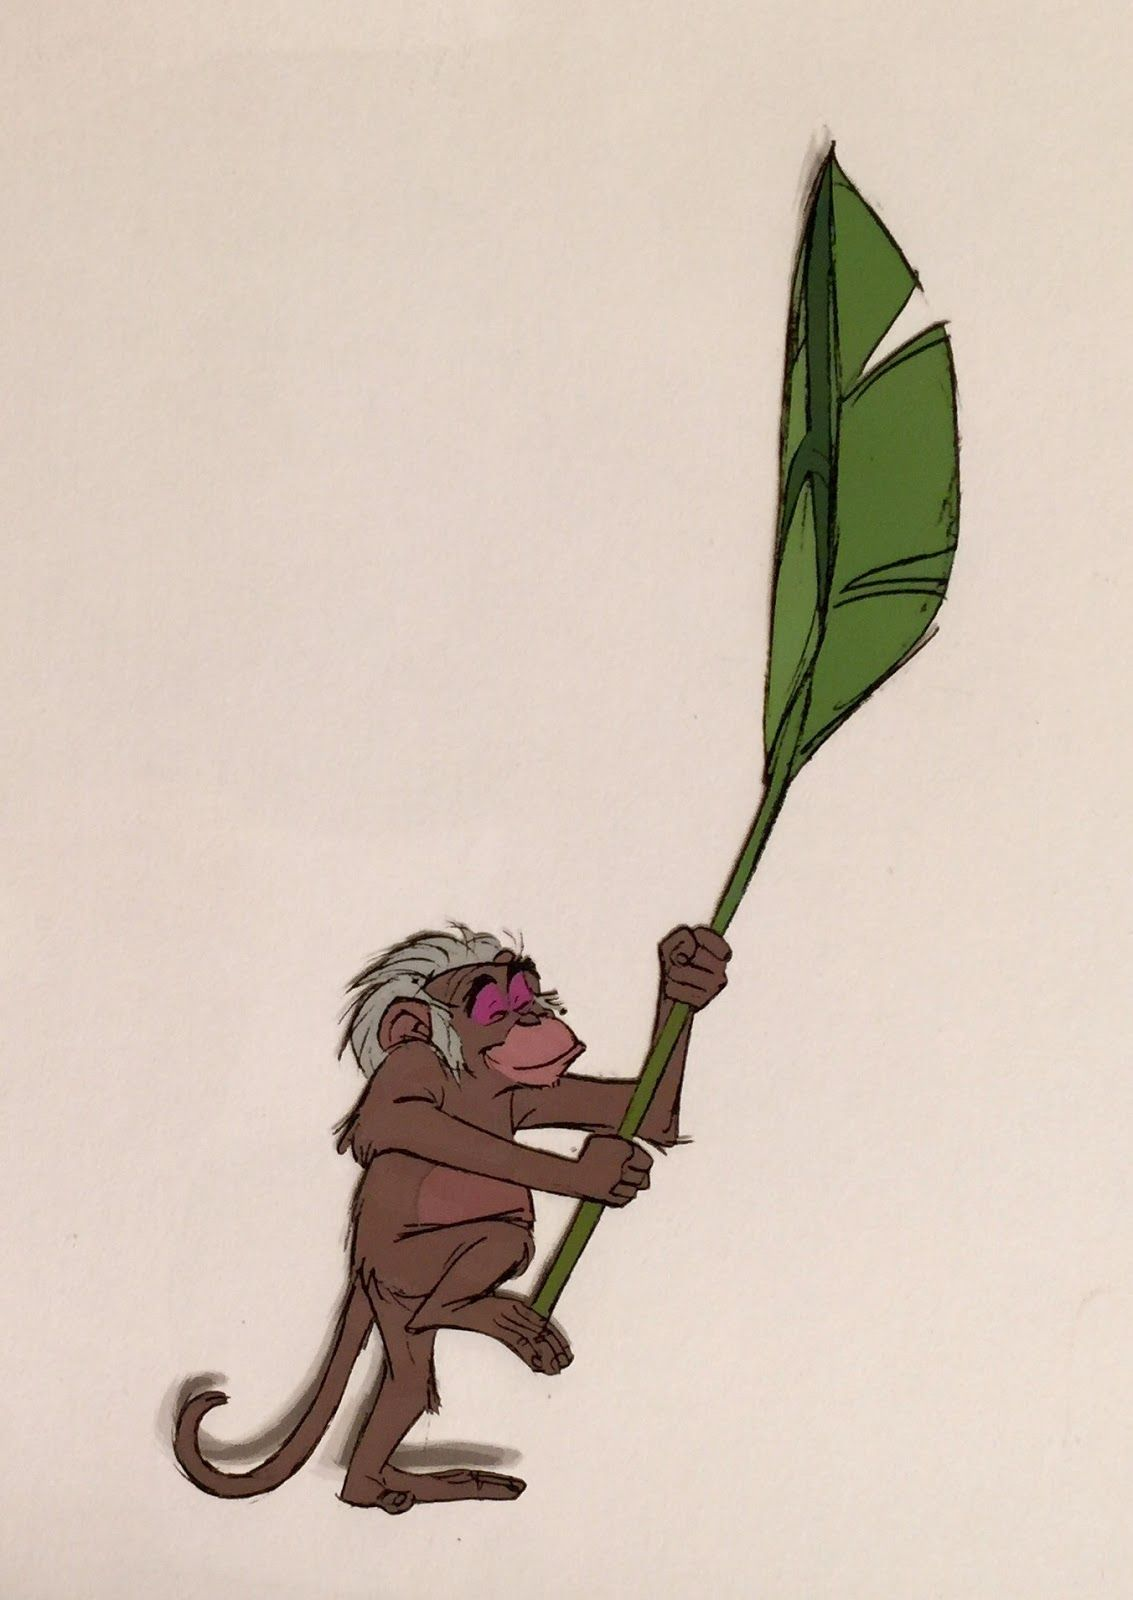 Original hand painted production cels of King Louie, Mowgli, and a